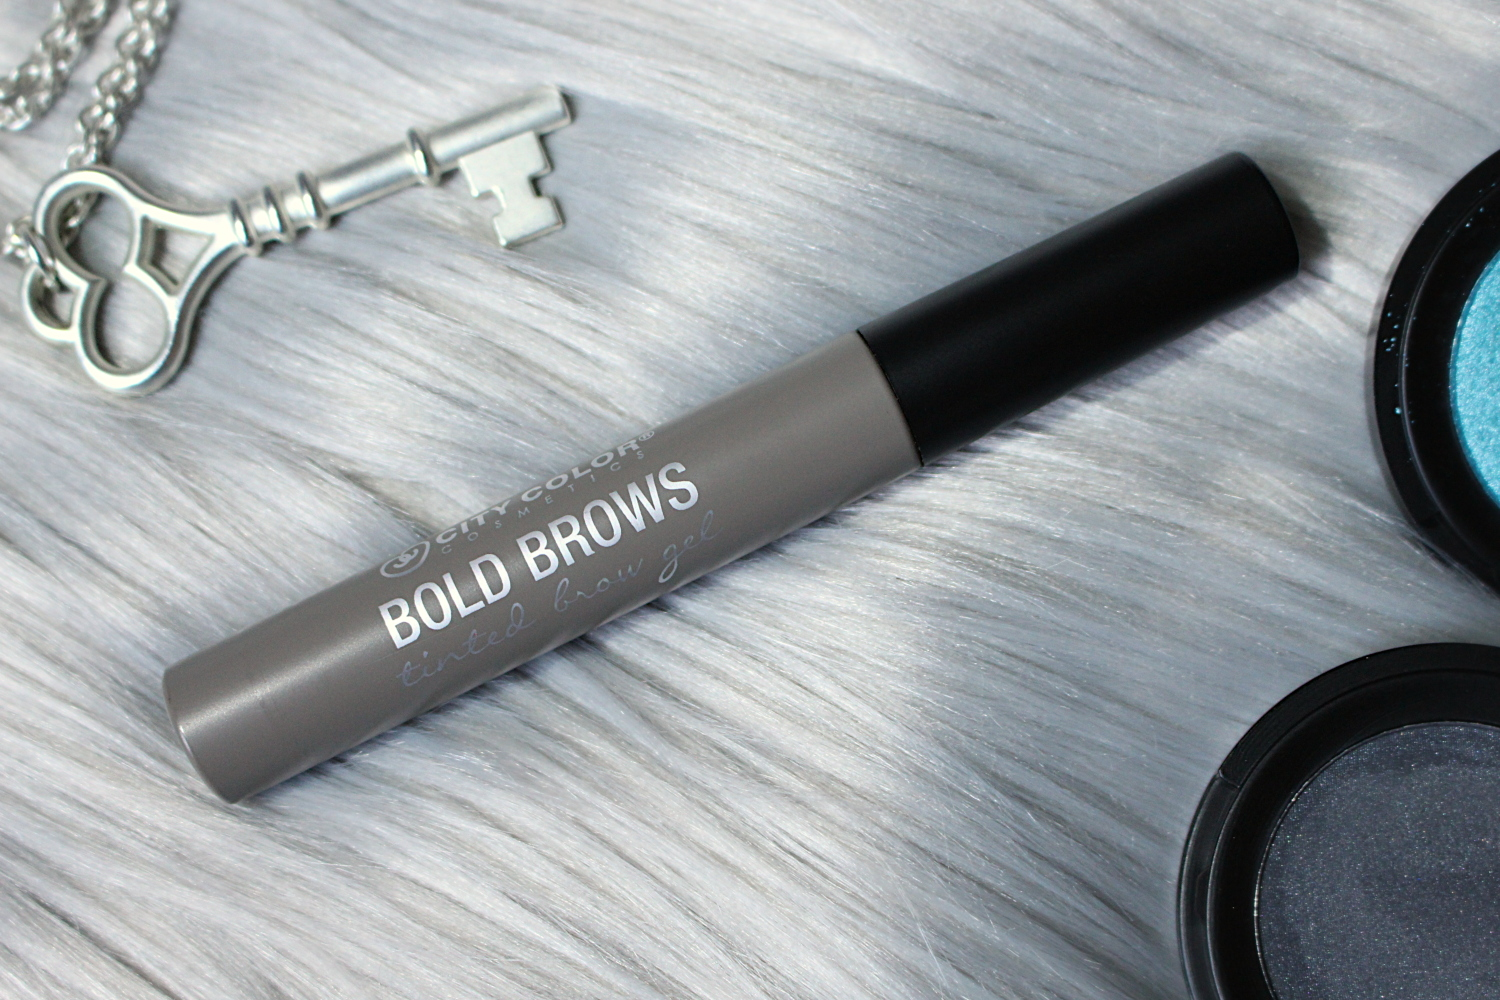 City Color Cosmetics Tinted Brow Gel In 'Taupe' is laying on a furry rug